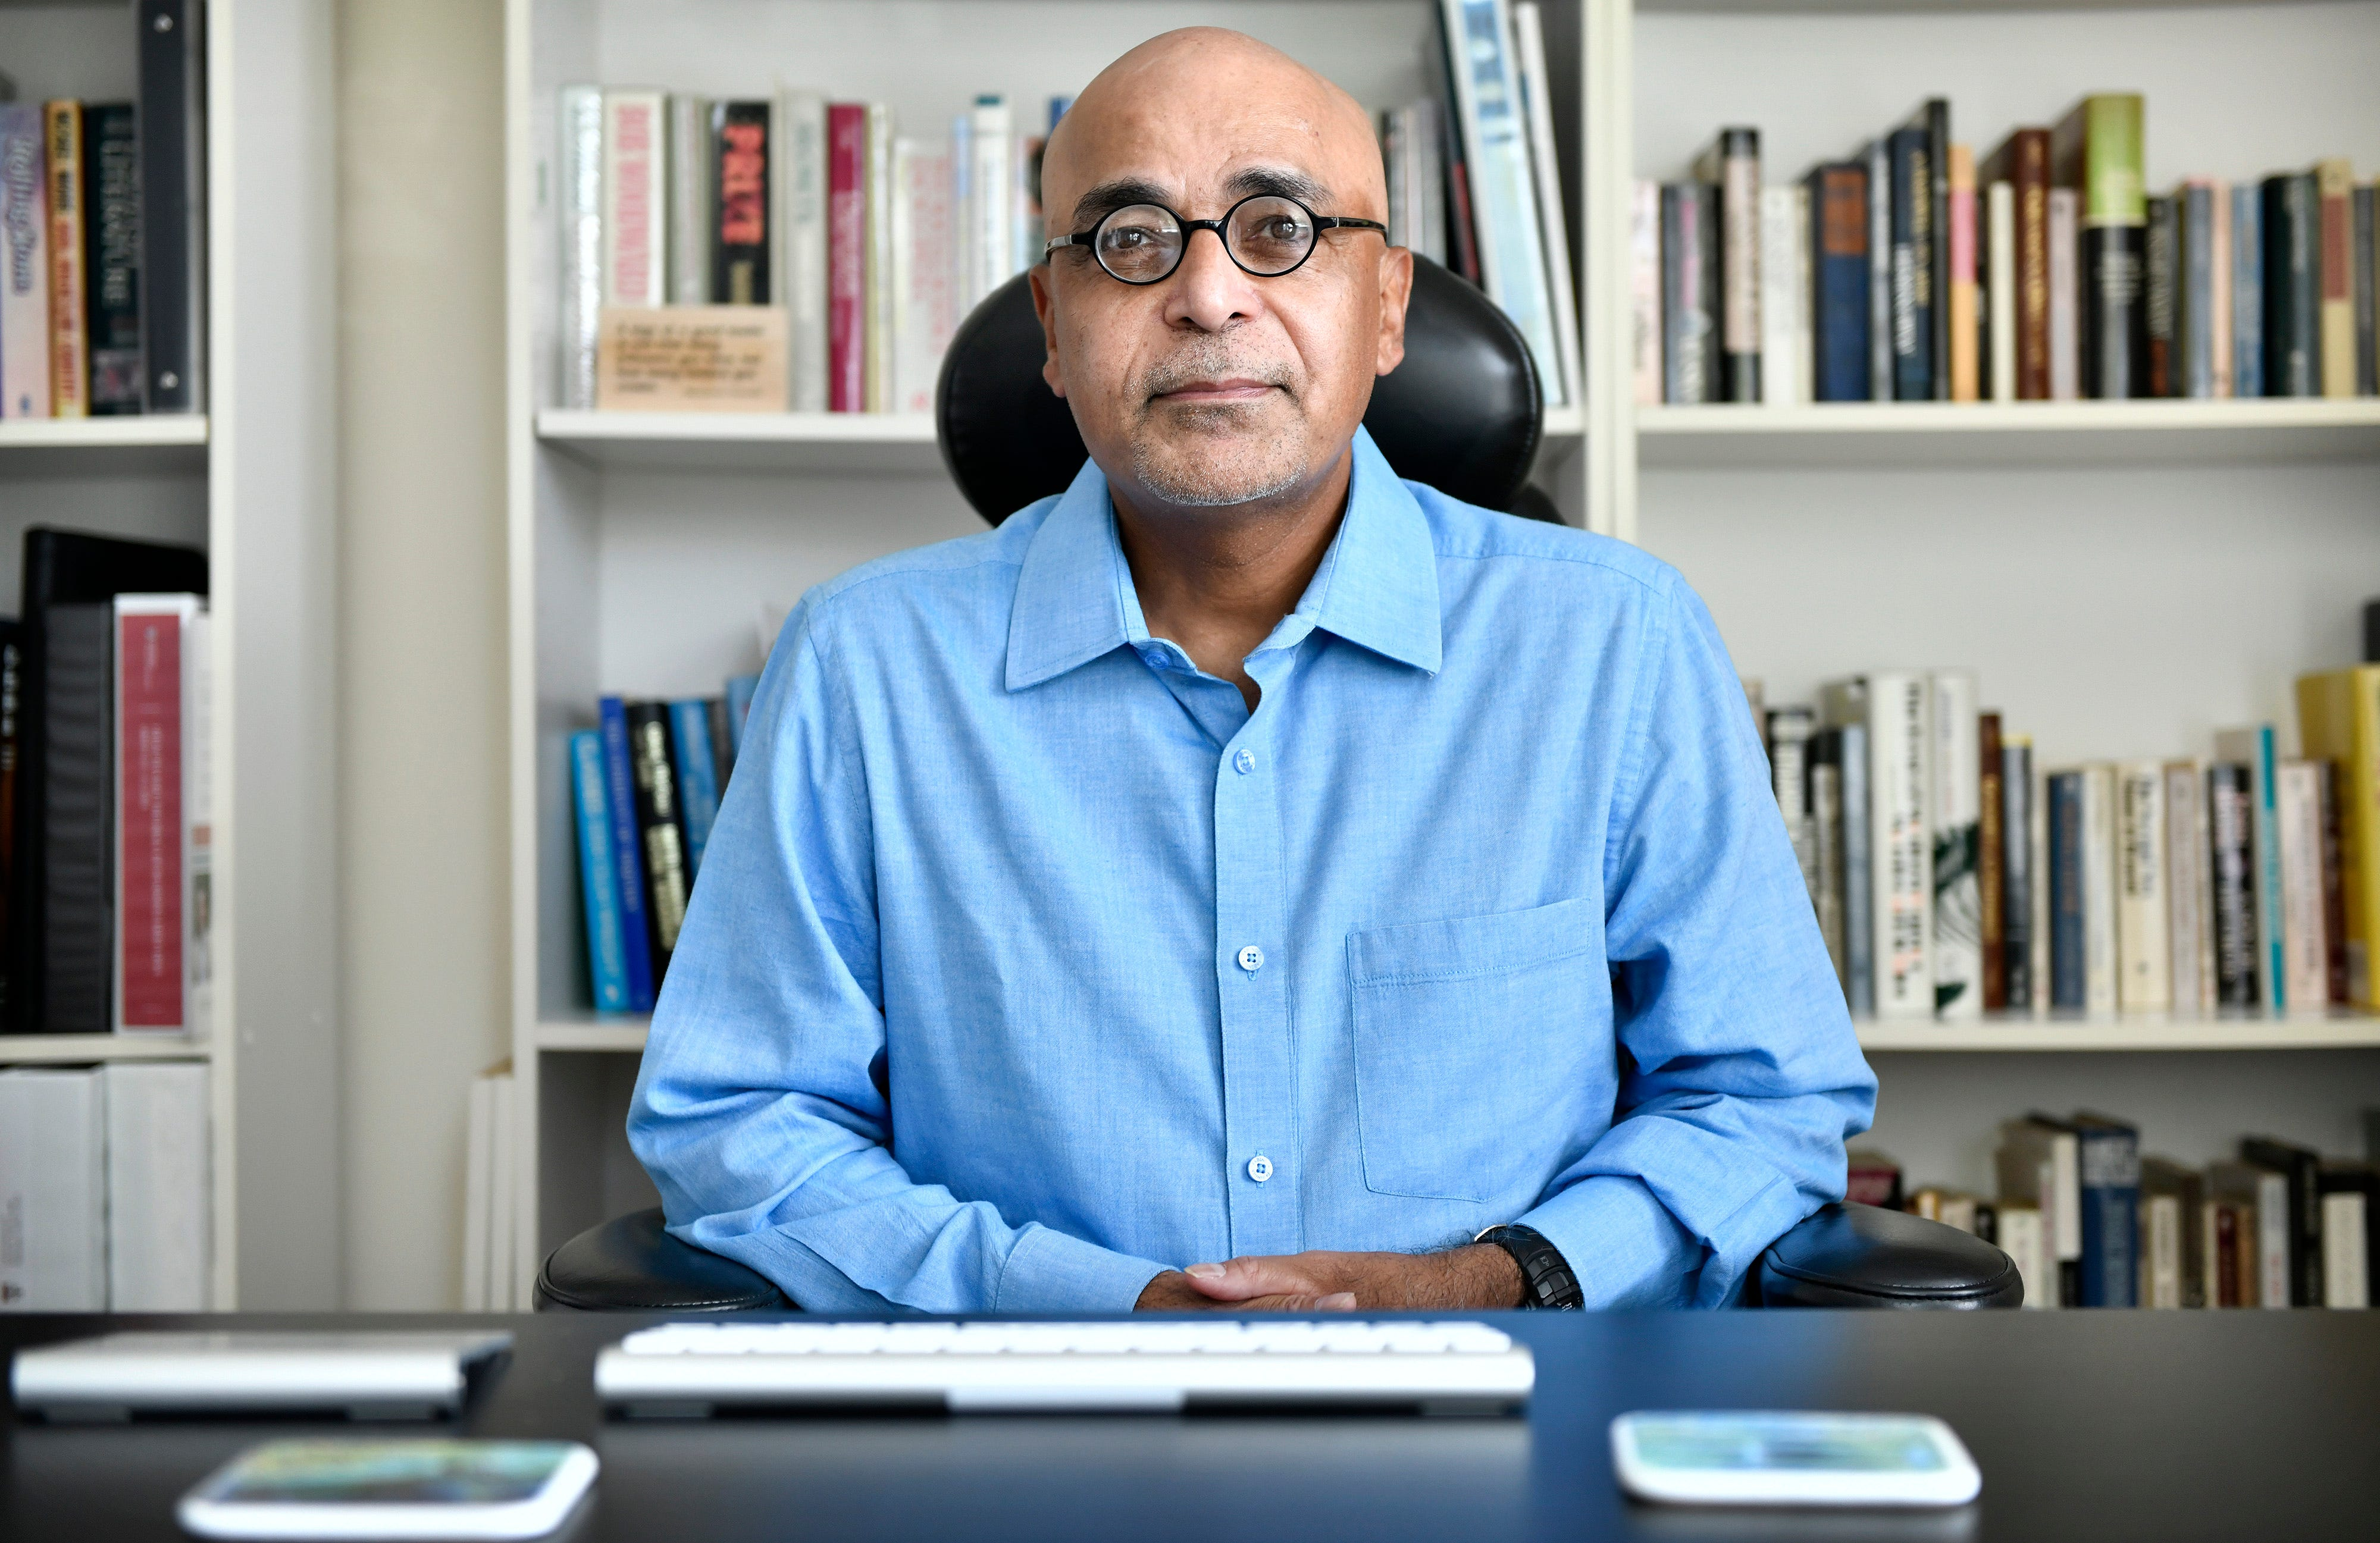 K. Vish Viswanath, a health communication professor at Harvard and an independent adviser to the CDC, criticizes the federal government for failing to give officials the guidance they needed to deal with those most vulnerable to COVID-19.